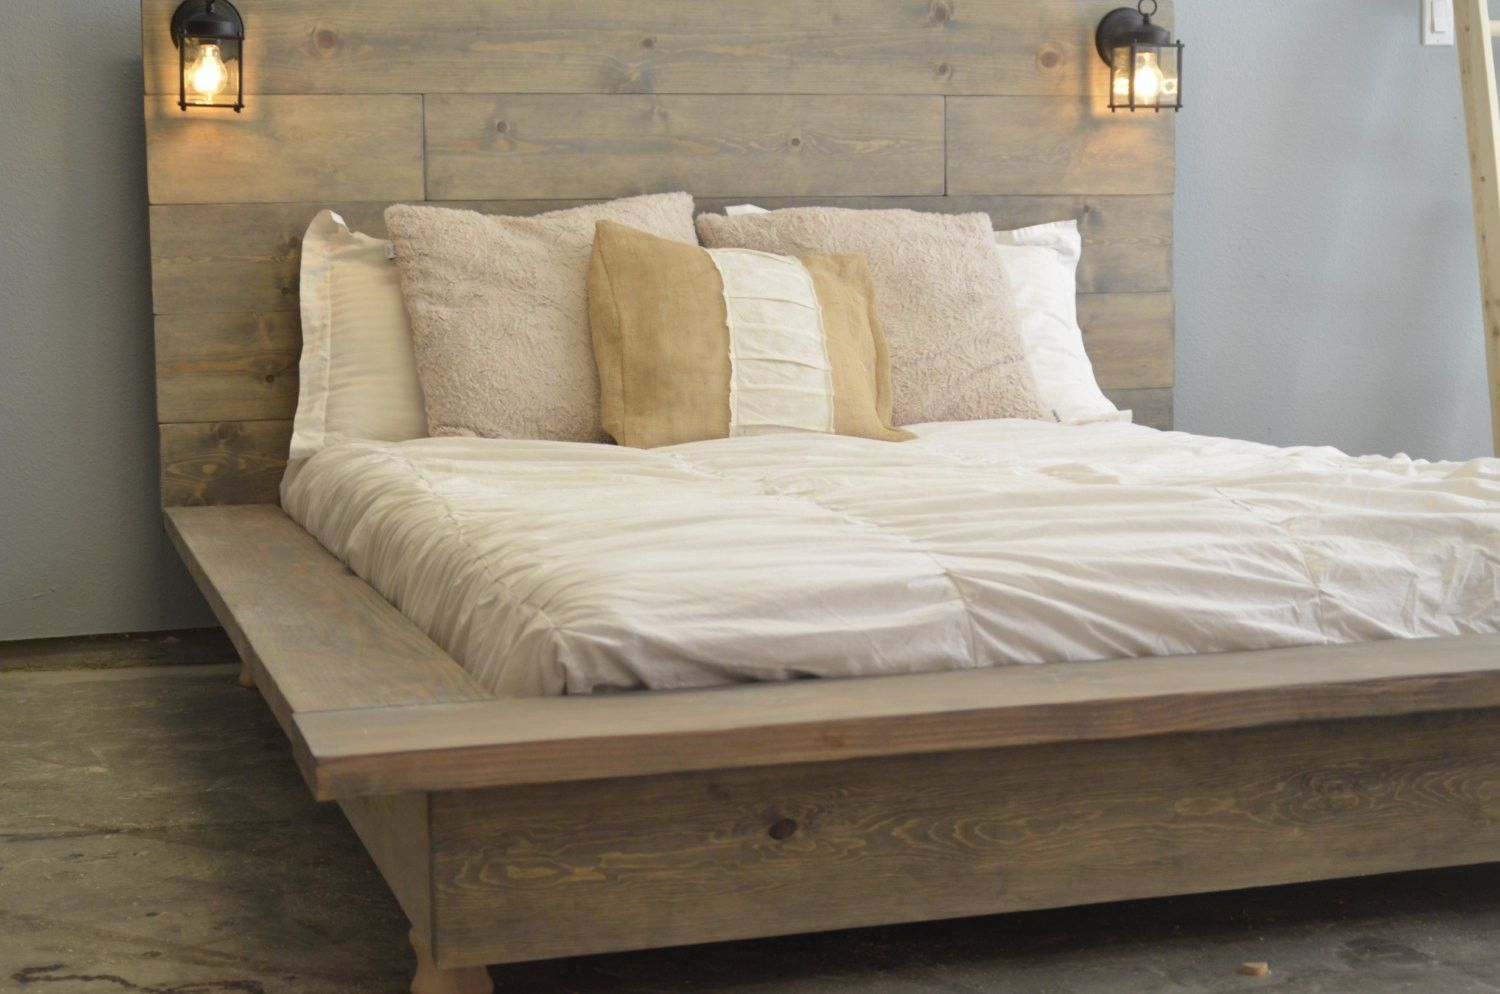 Combination Wood And Metal Headboards Rustic Queen King Size Floor Standing Grey Headboard Ideas Also Furniture Wooden High Plat Diy Bed Frame Diy Platform Bed Headboard With Lights